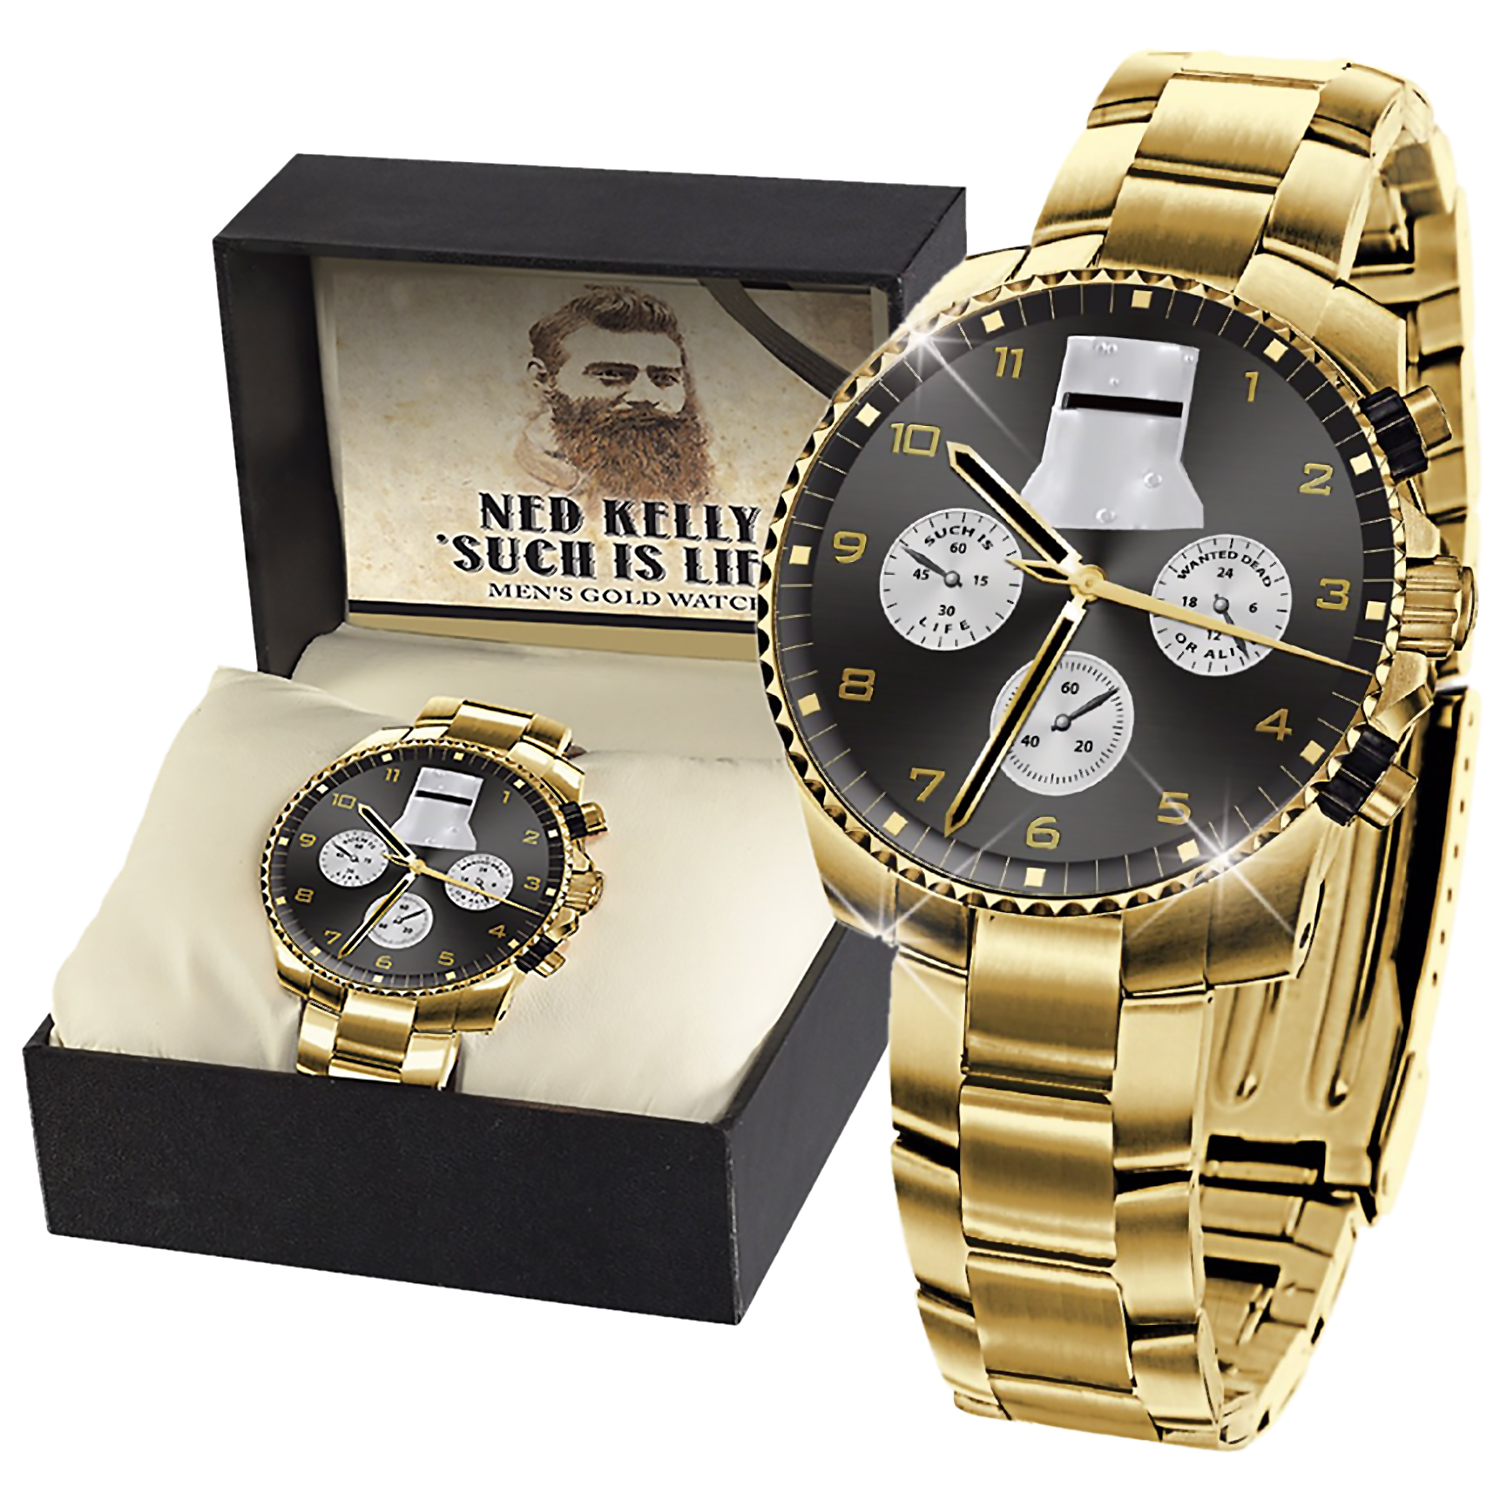 Ned Kelly 'Such is Life' Men's Gold Watch